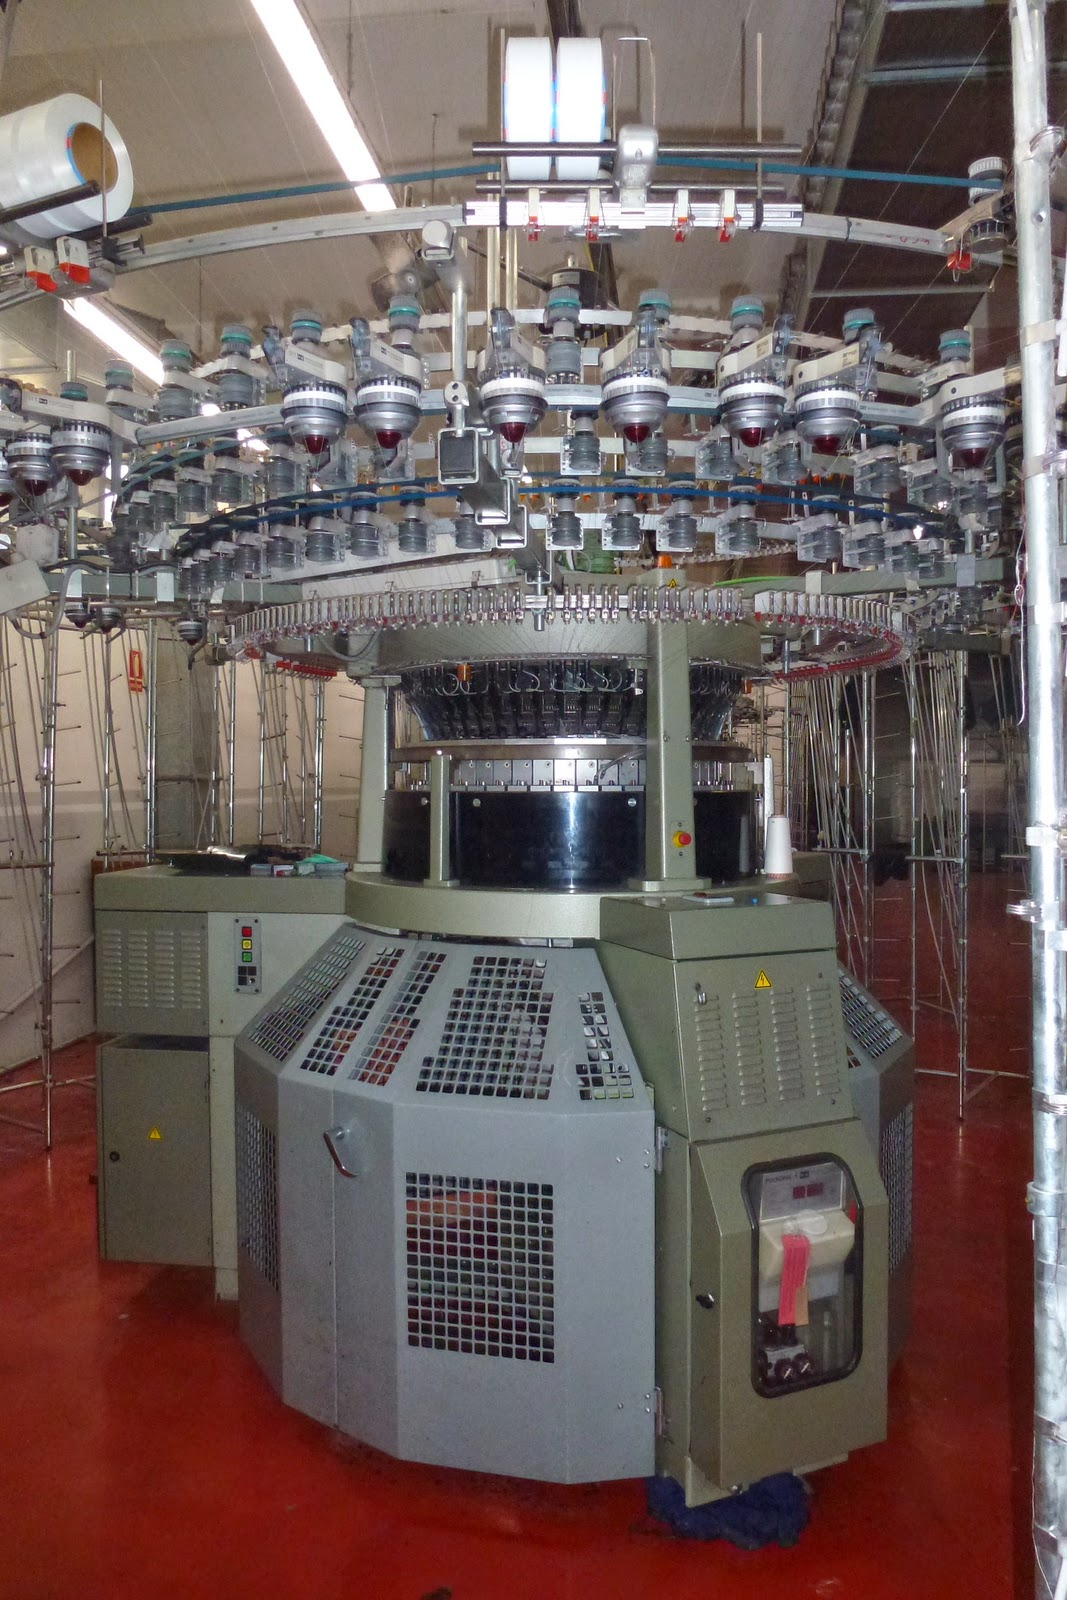 Knitting Machine For Sale : Ref se iam terrot scc knitting machines for